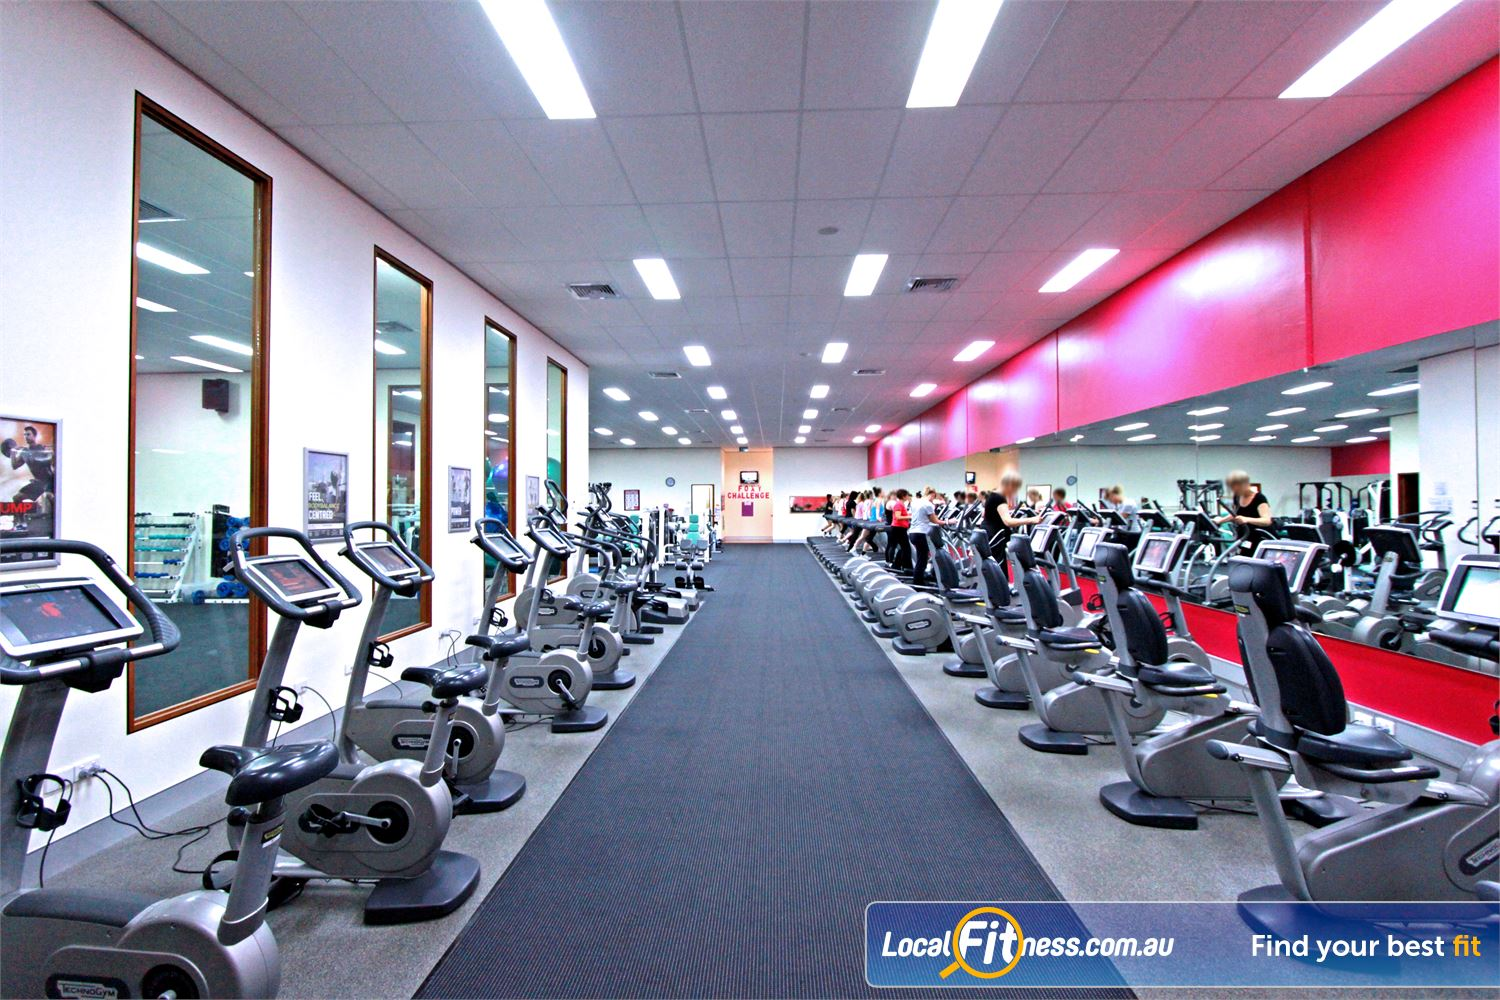 Fernwood Fitness Ferntree Gully At Fernwood Ferntree Gully, variety is key with our HUGE range of cardio.